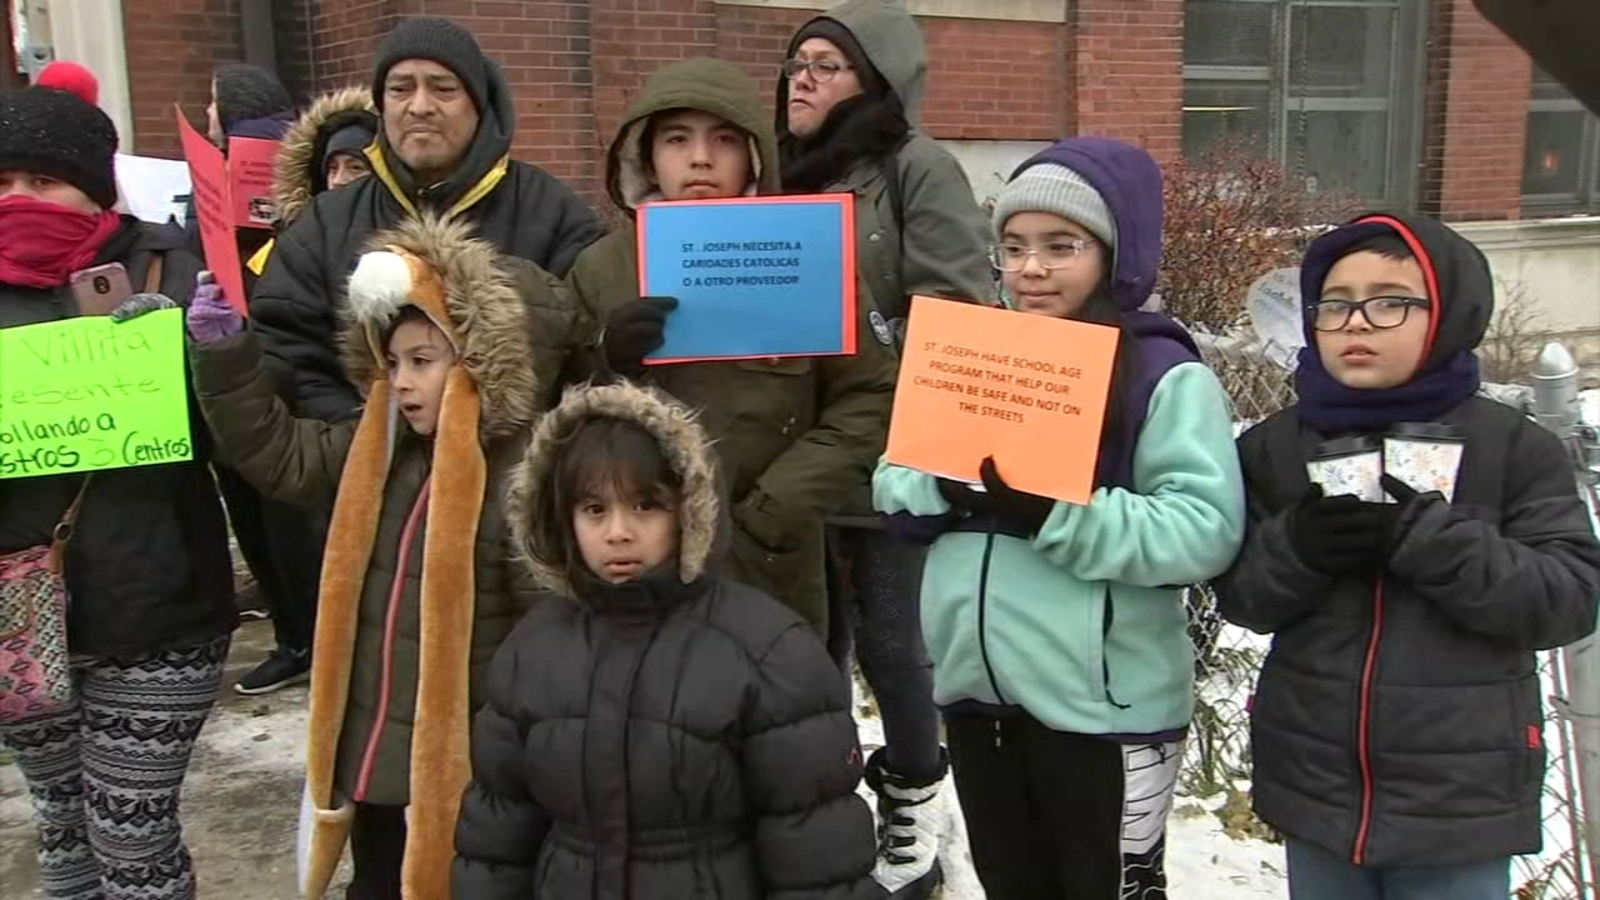 Chicago families fighting to save 3 child care centers set to close over lack of funding